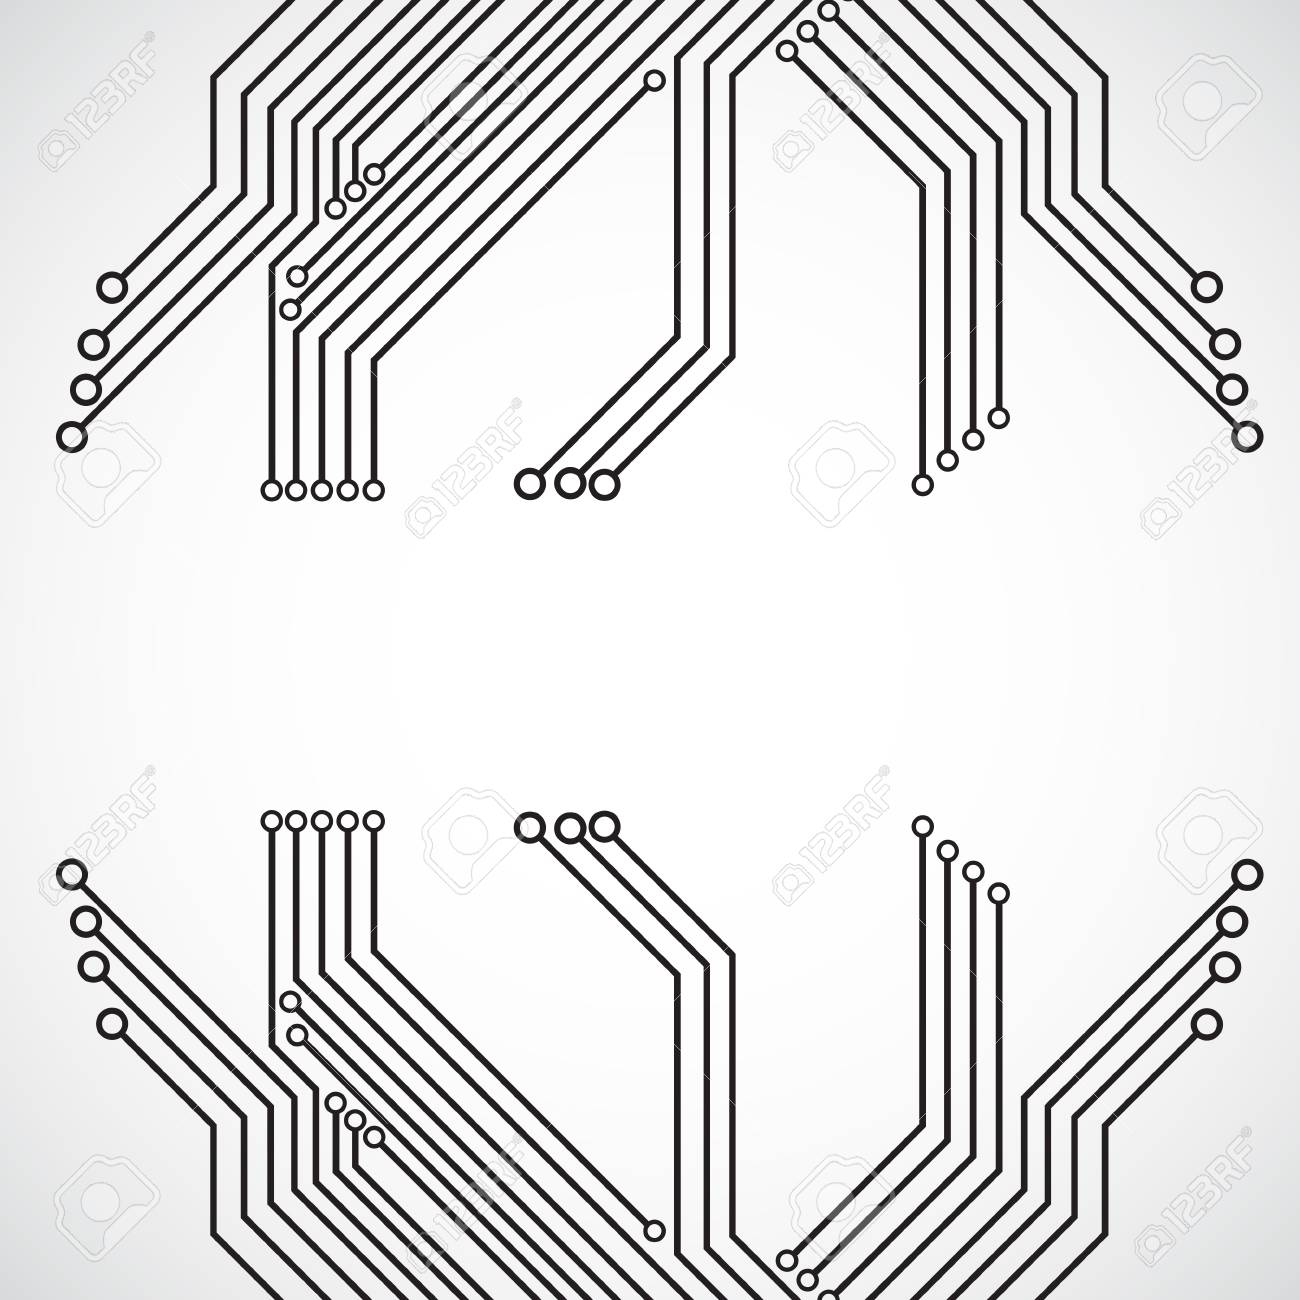 Circuit board background royalty free cliparts vectors and stock